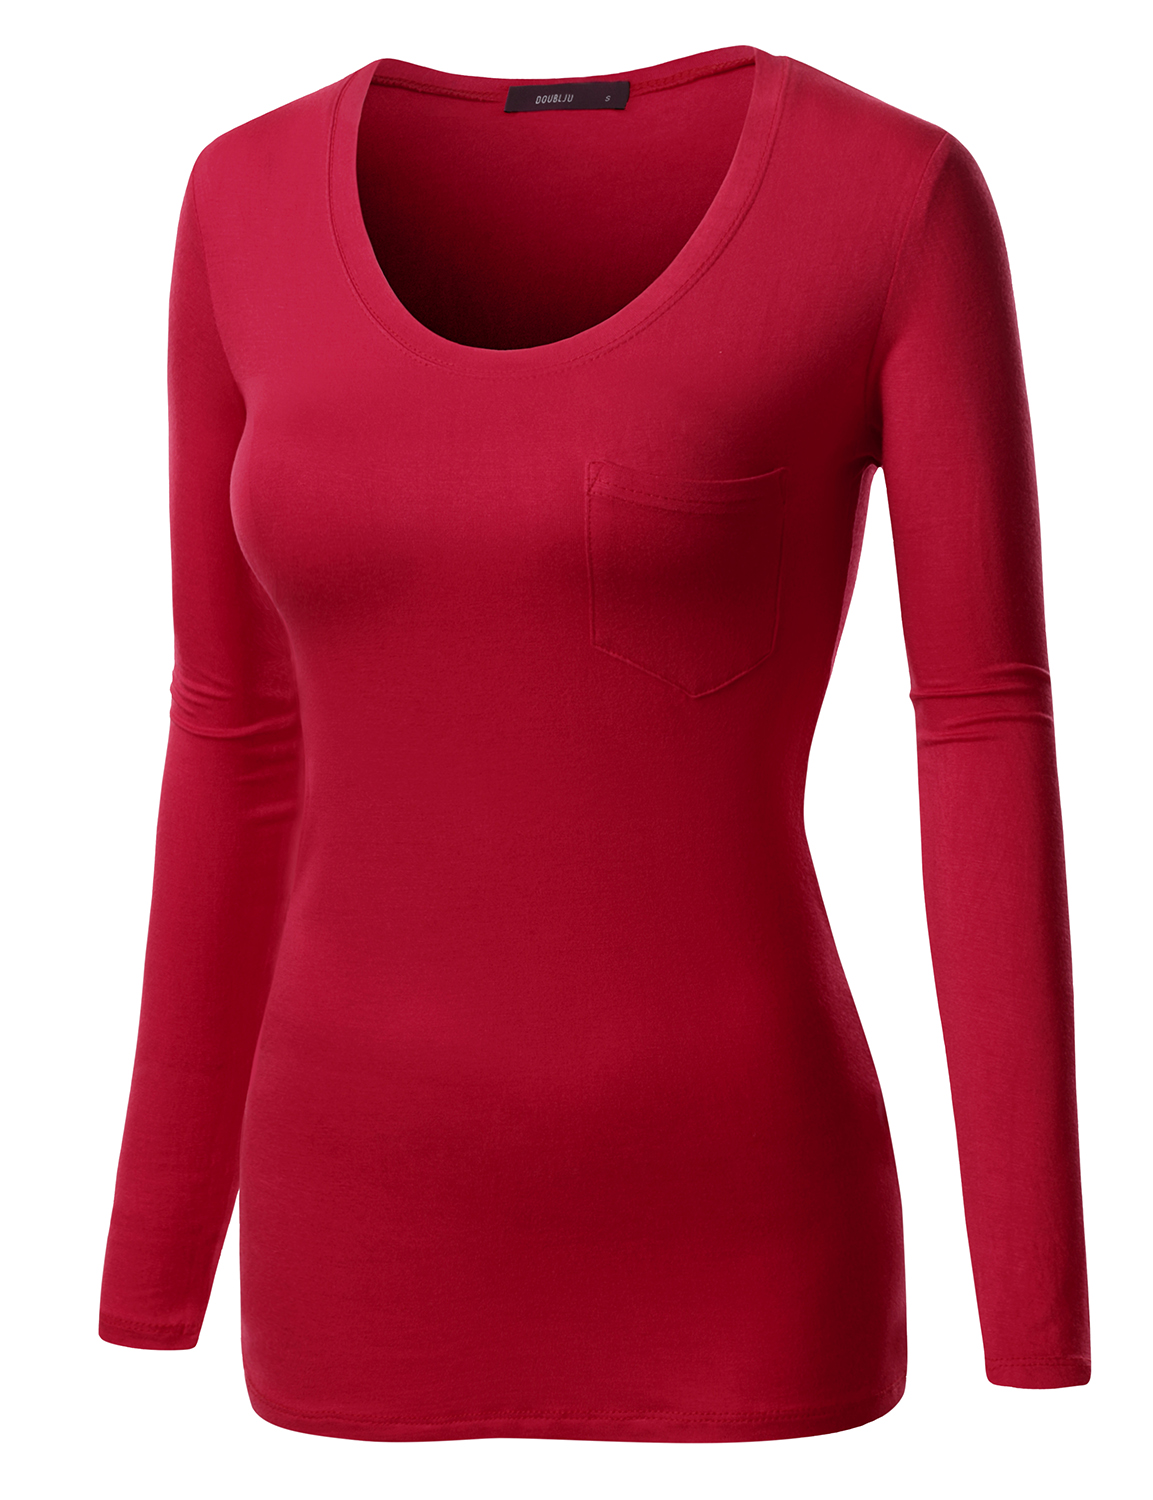 46c8fbce1b9 Doublju - Doublju Womens Chest Pockts Long Sleeve Simple T-Shirts Top With Plus  Size MUSTARD M - Walmart.com